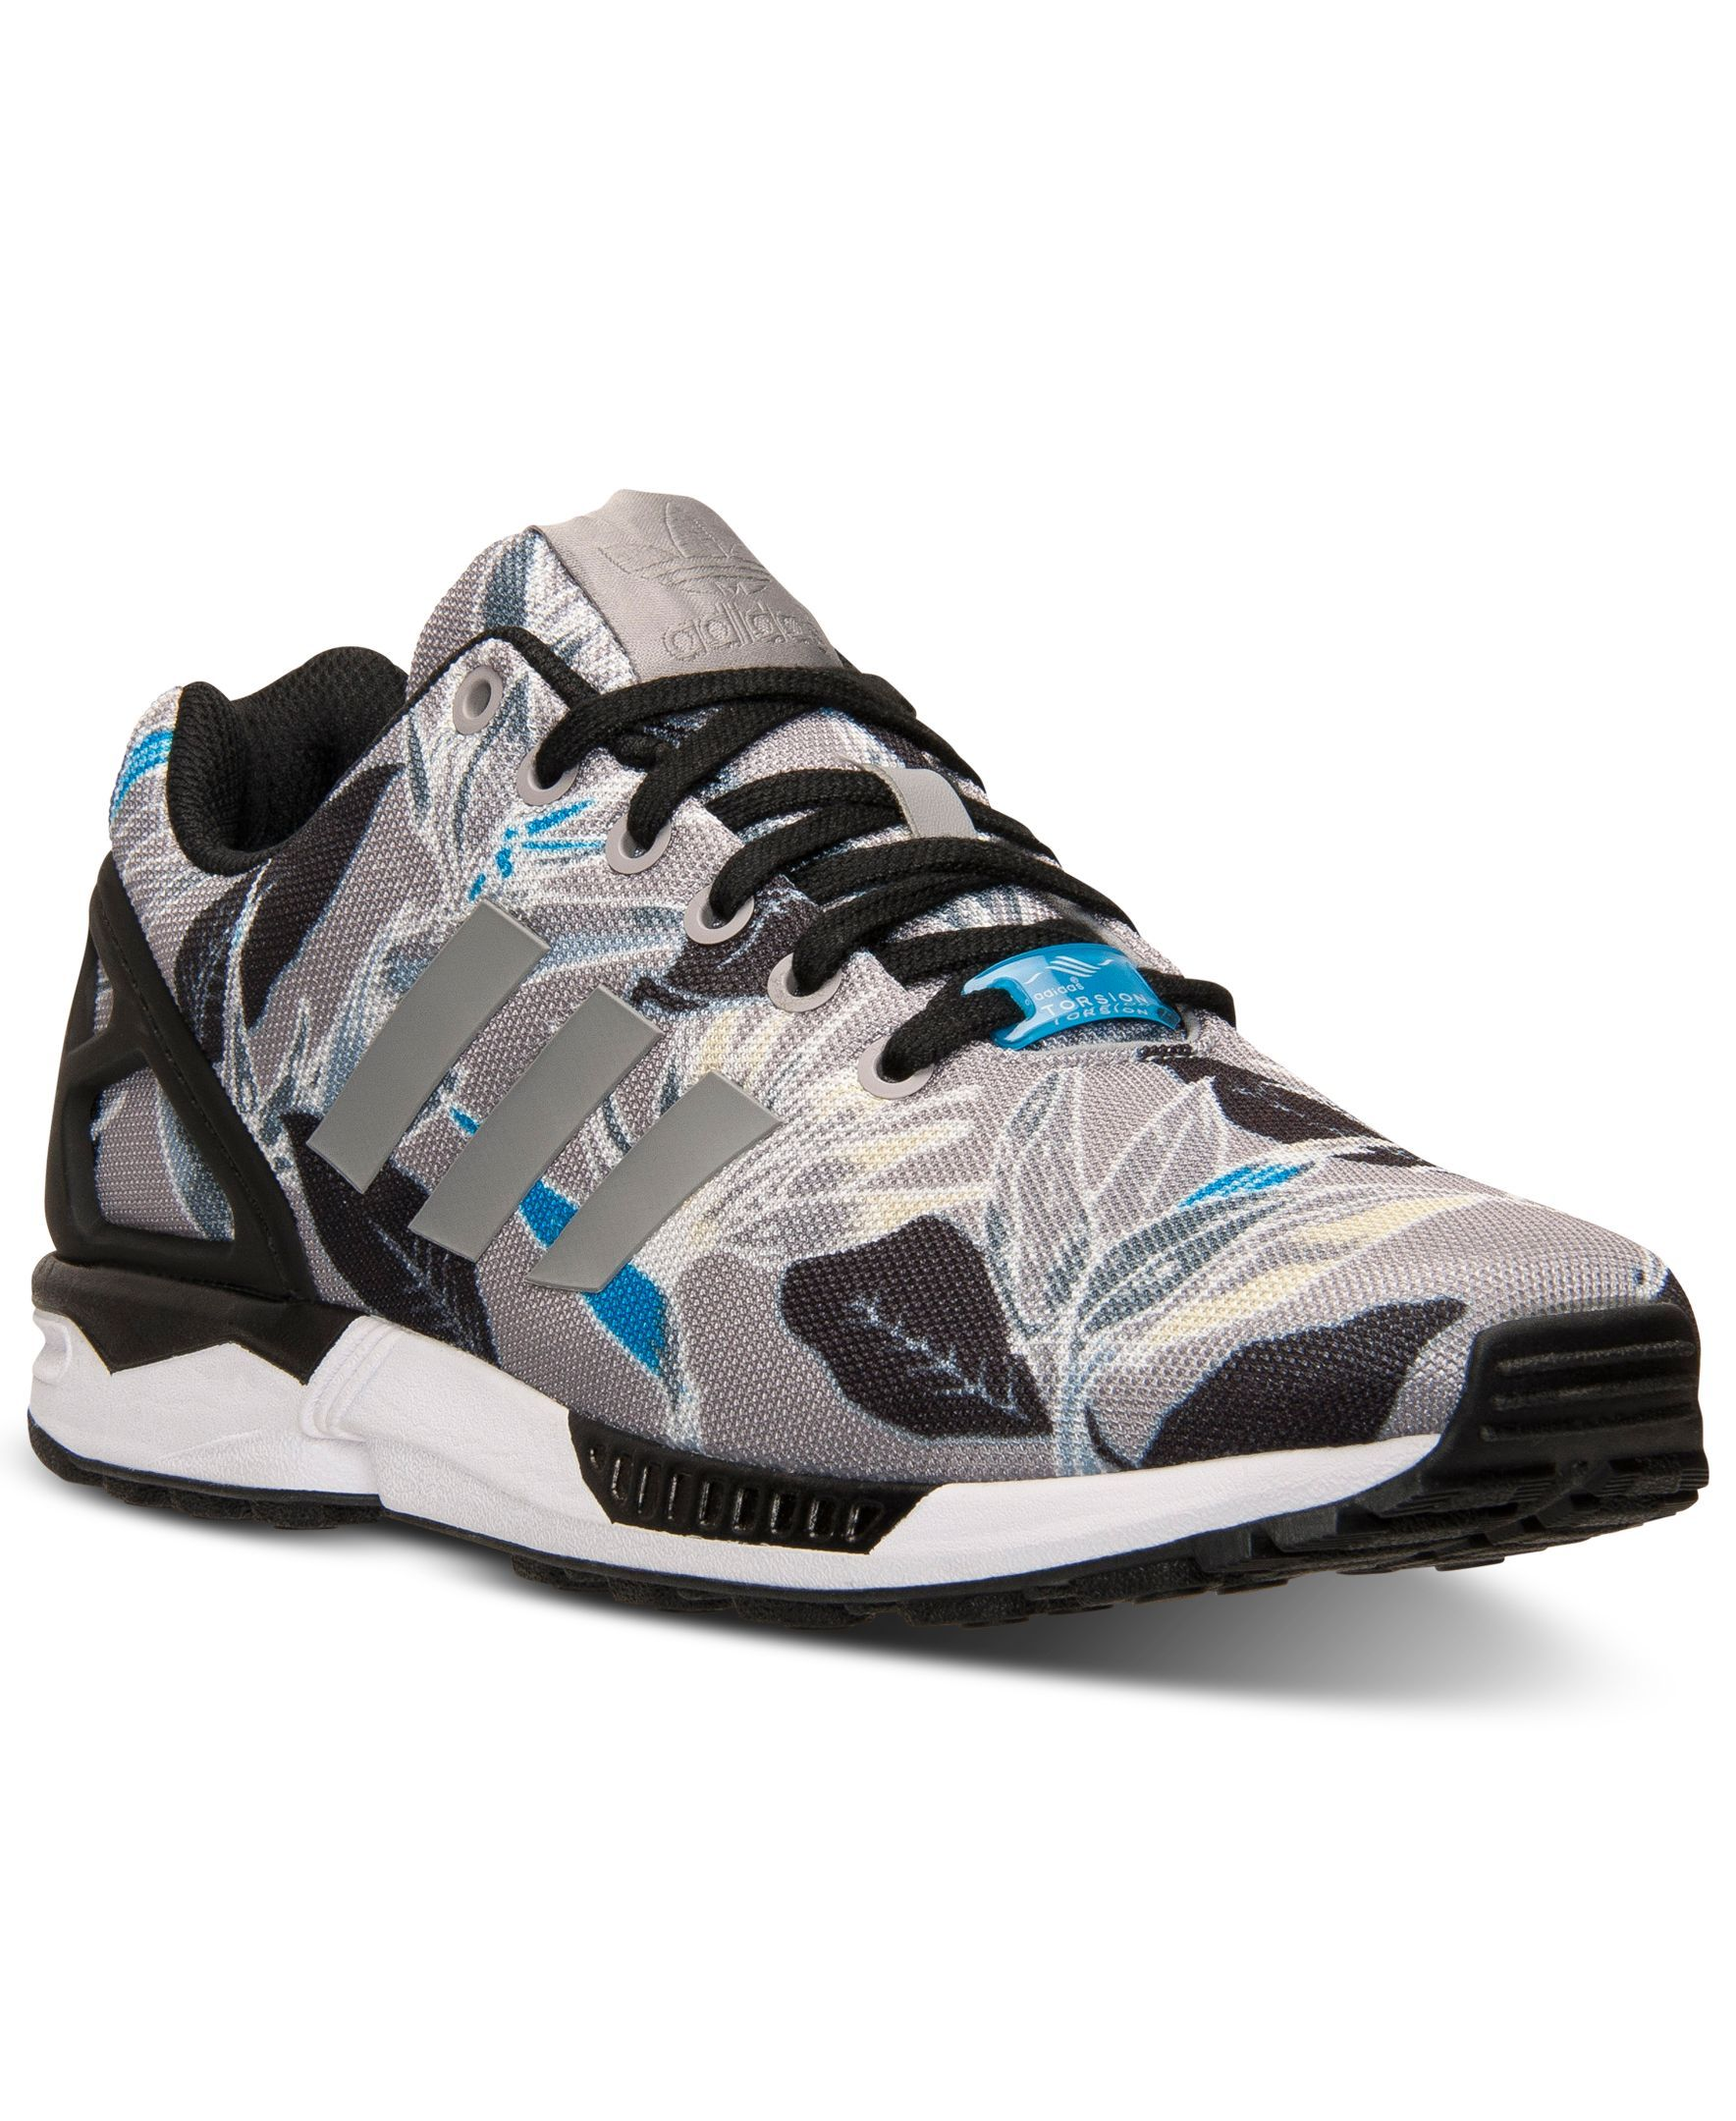 ef1852dae341 adidas Men s Zx Flux Floral Print Casual Sneakers from Finish Line ...